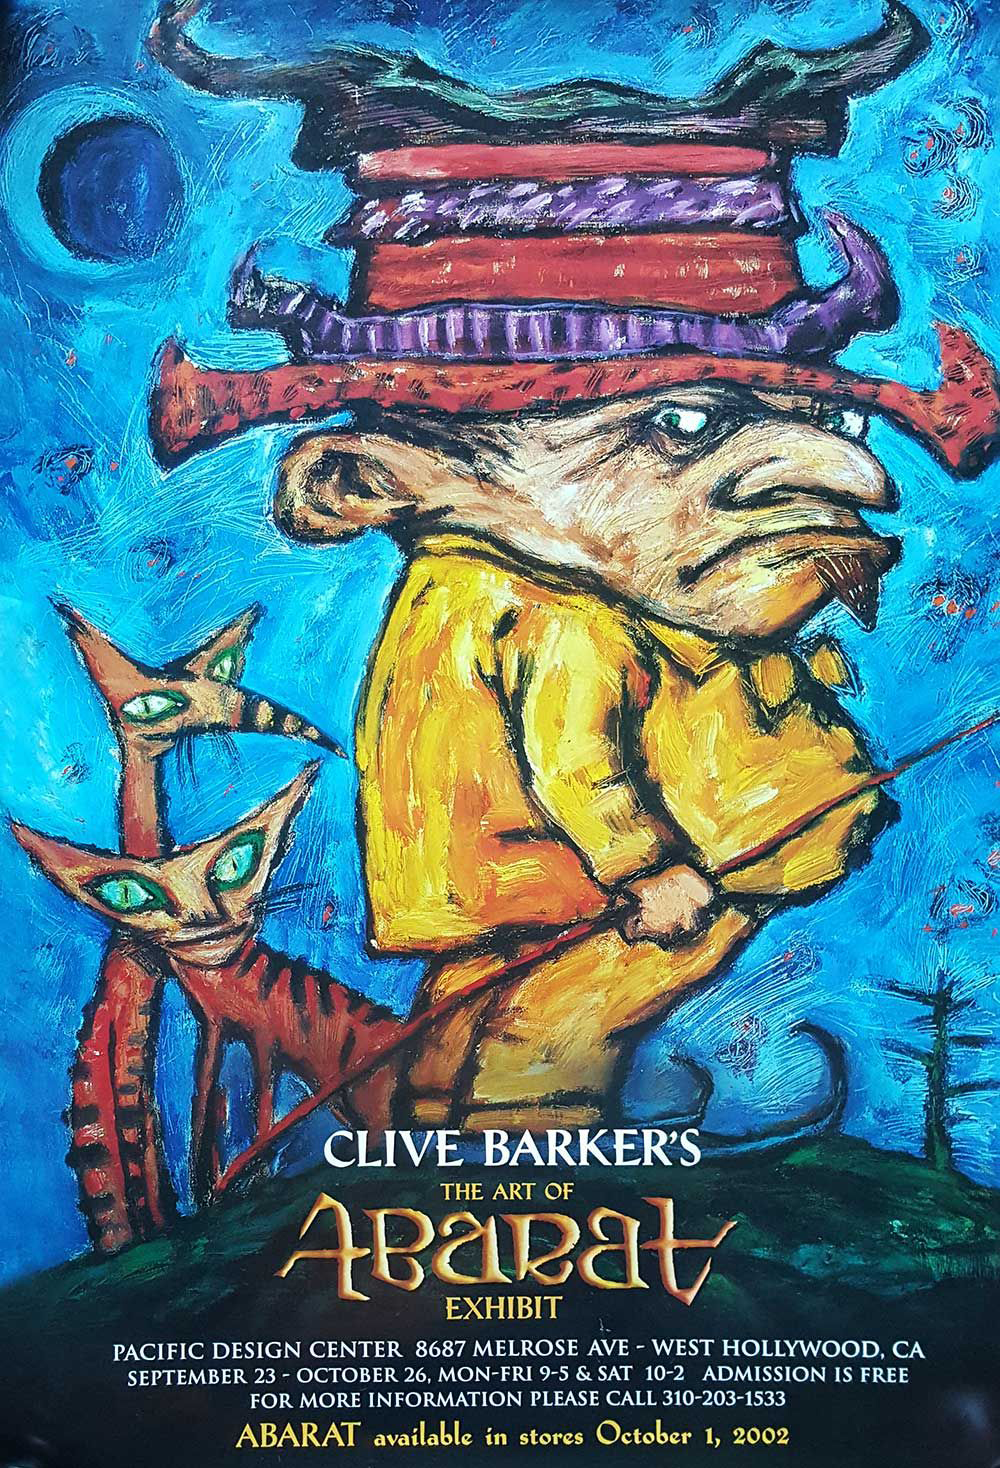 Signed Abarat Posters Available From The Clive Barker